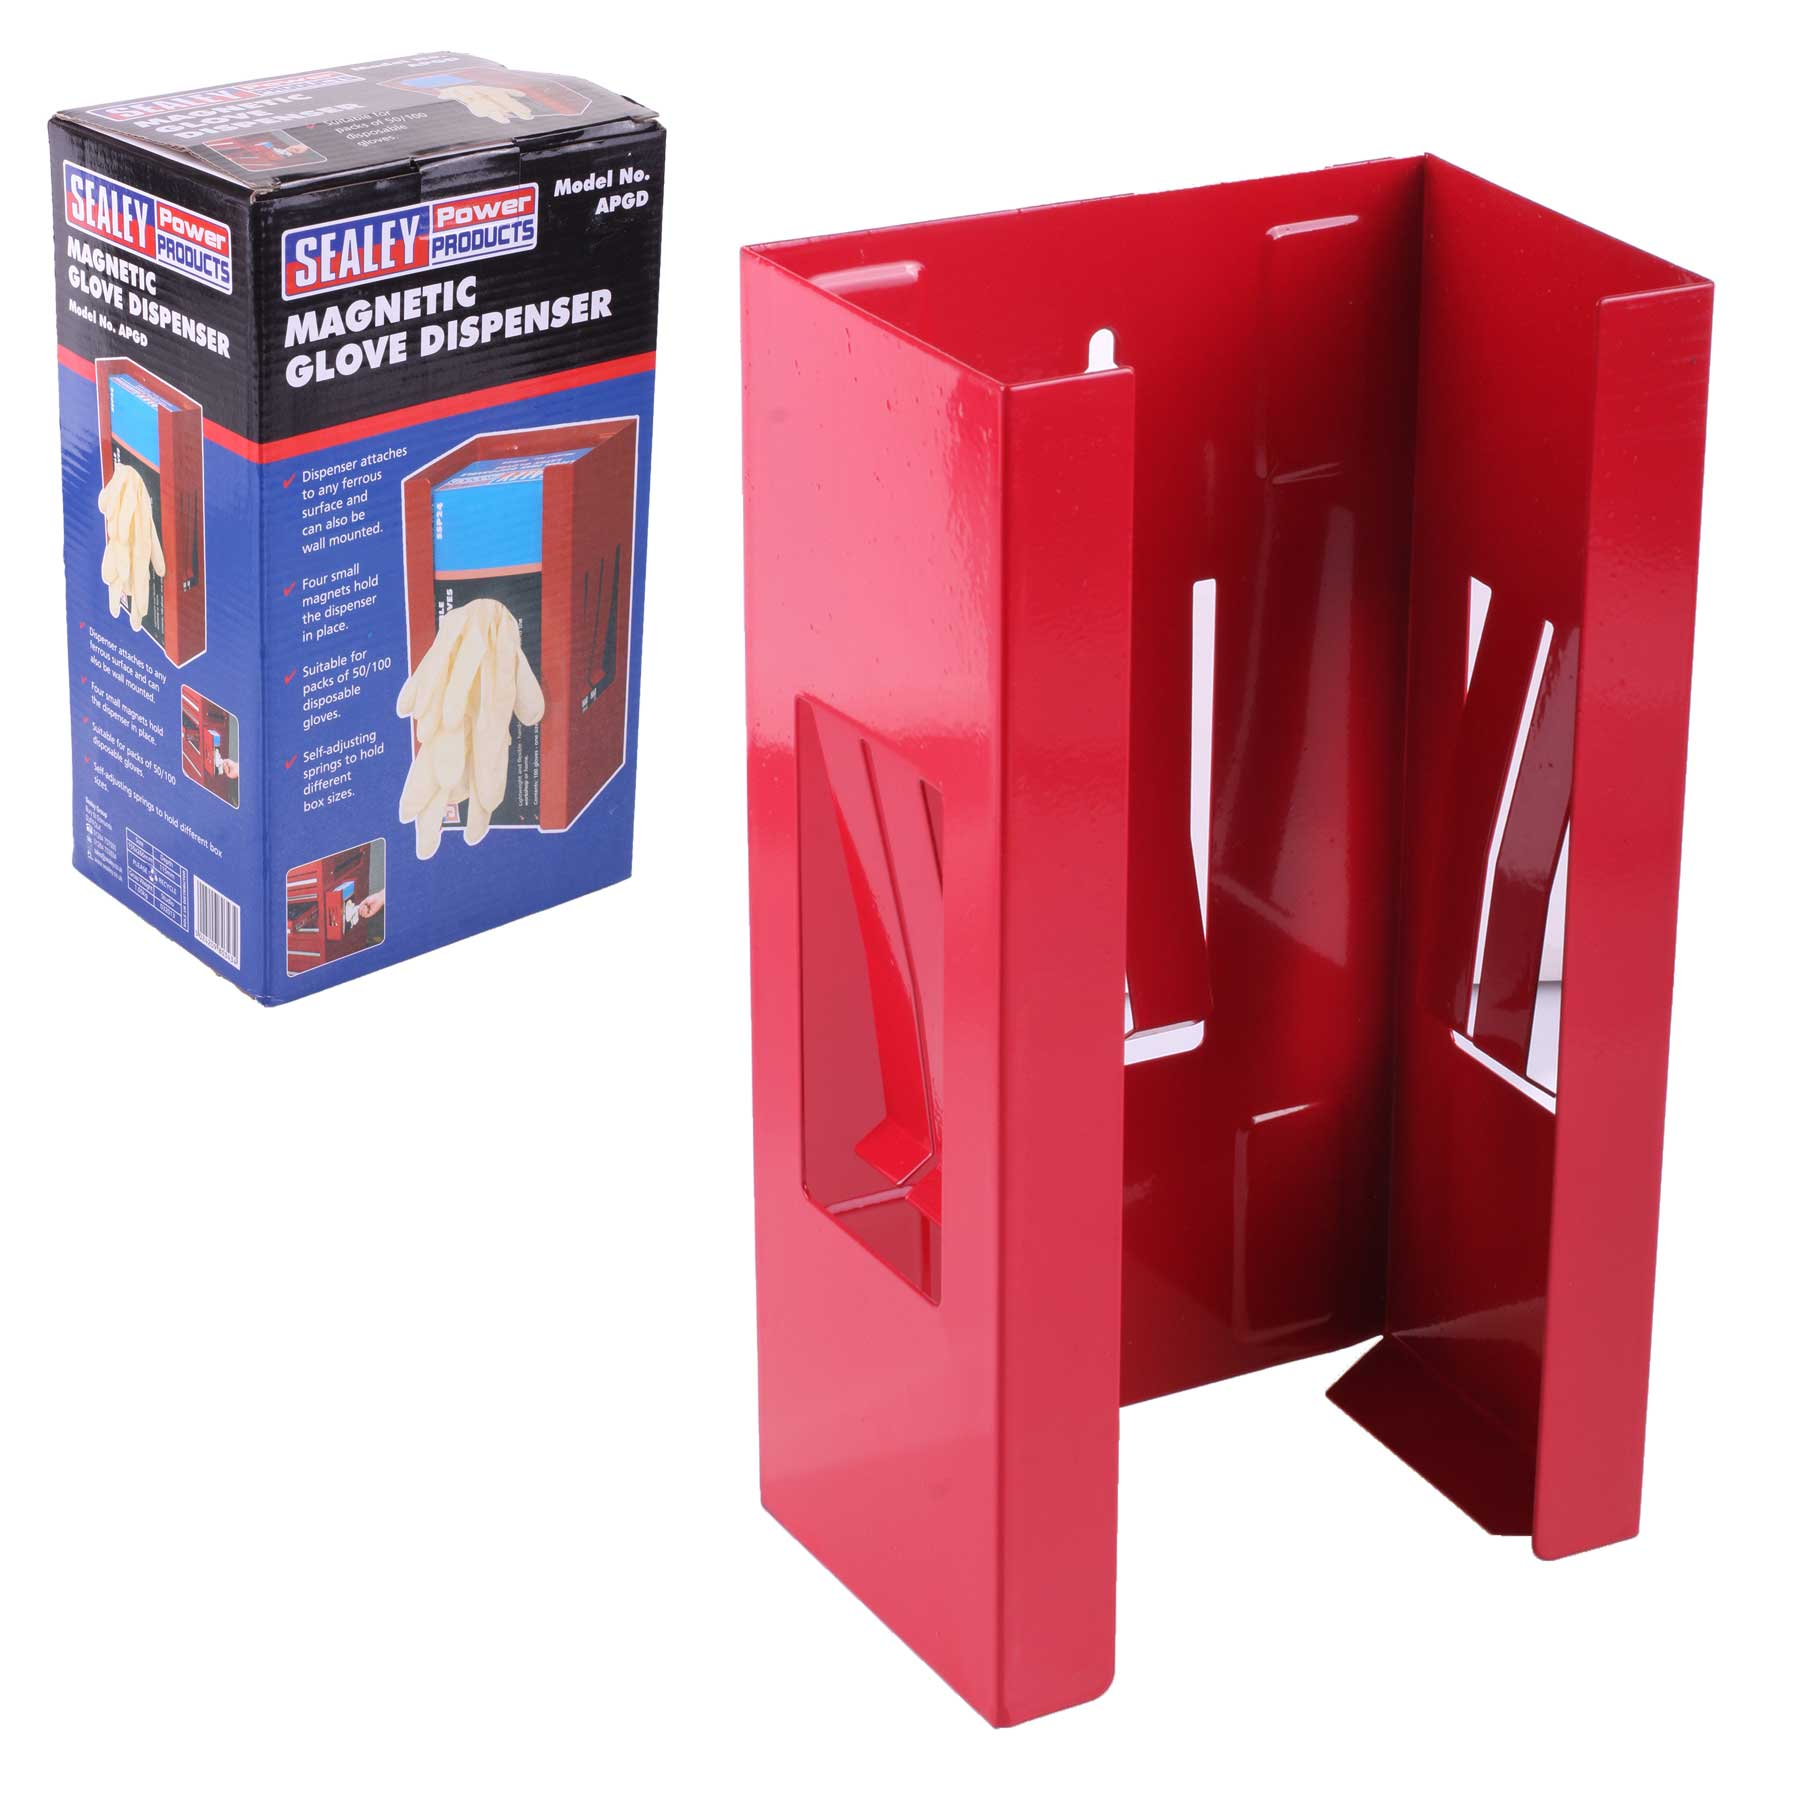 Sealey Apgd Magnetic Glove Dispenser Red Sealey Apgd